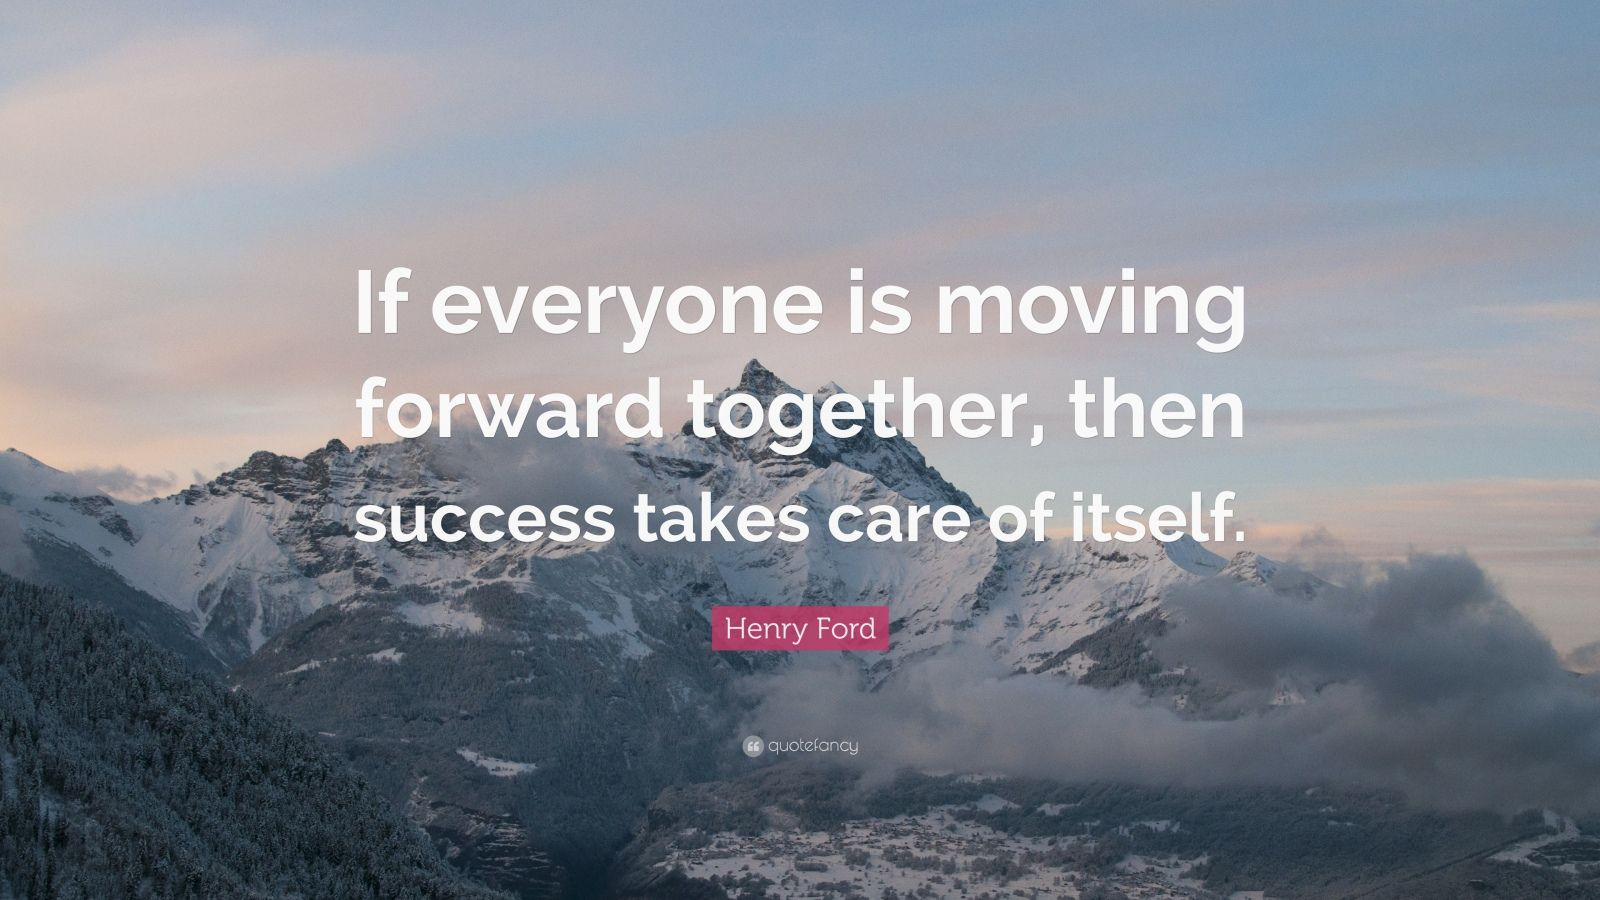 Steve Jobs Wallpaper Quotes Henry Ford Quote If Everyone Is Moving Forward Together